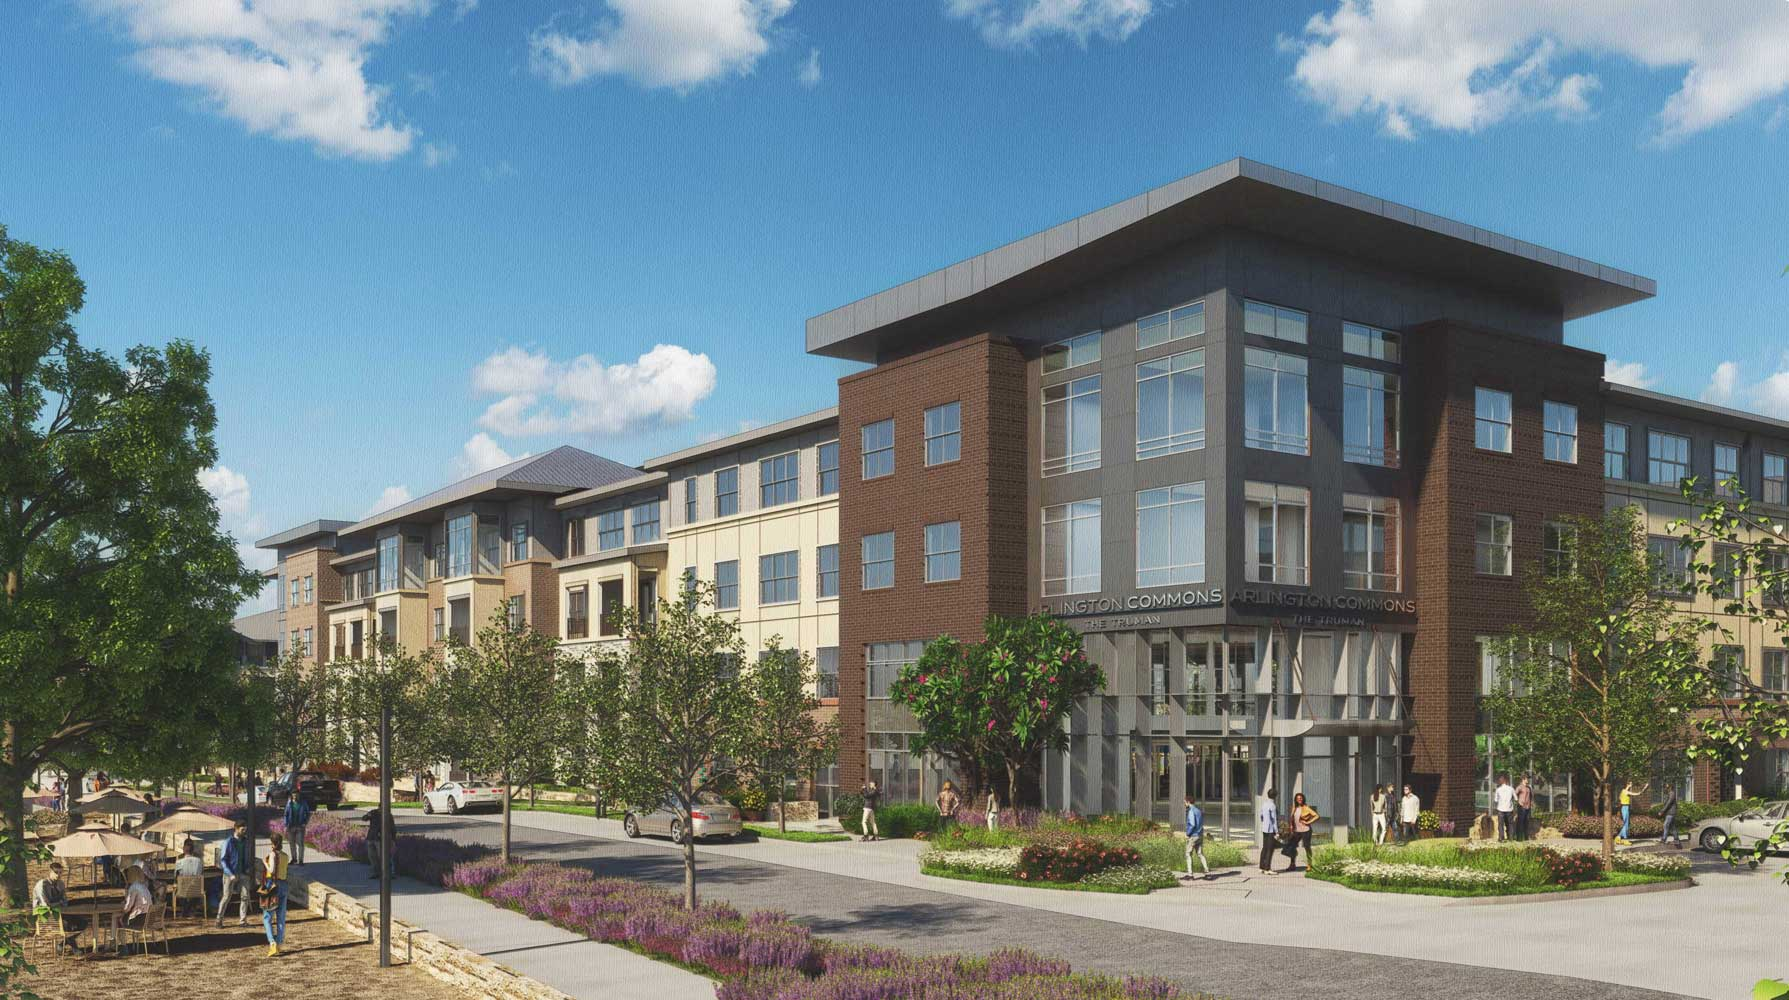 Luxury Apartments at The Truman Arlington Commons in Arlington, Texas